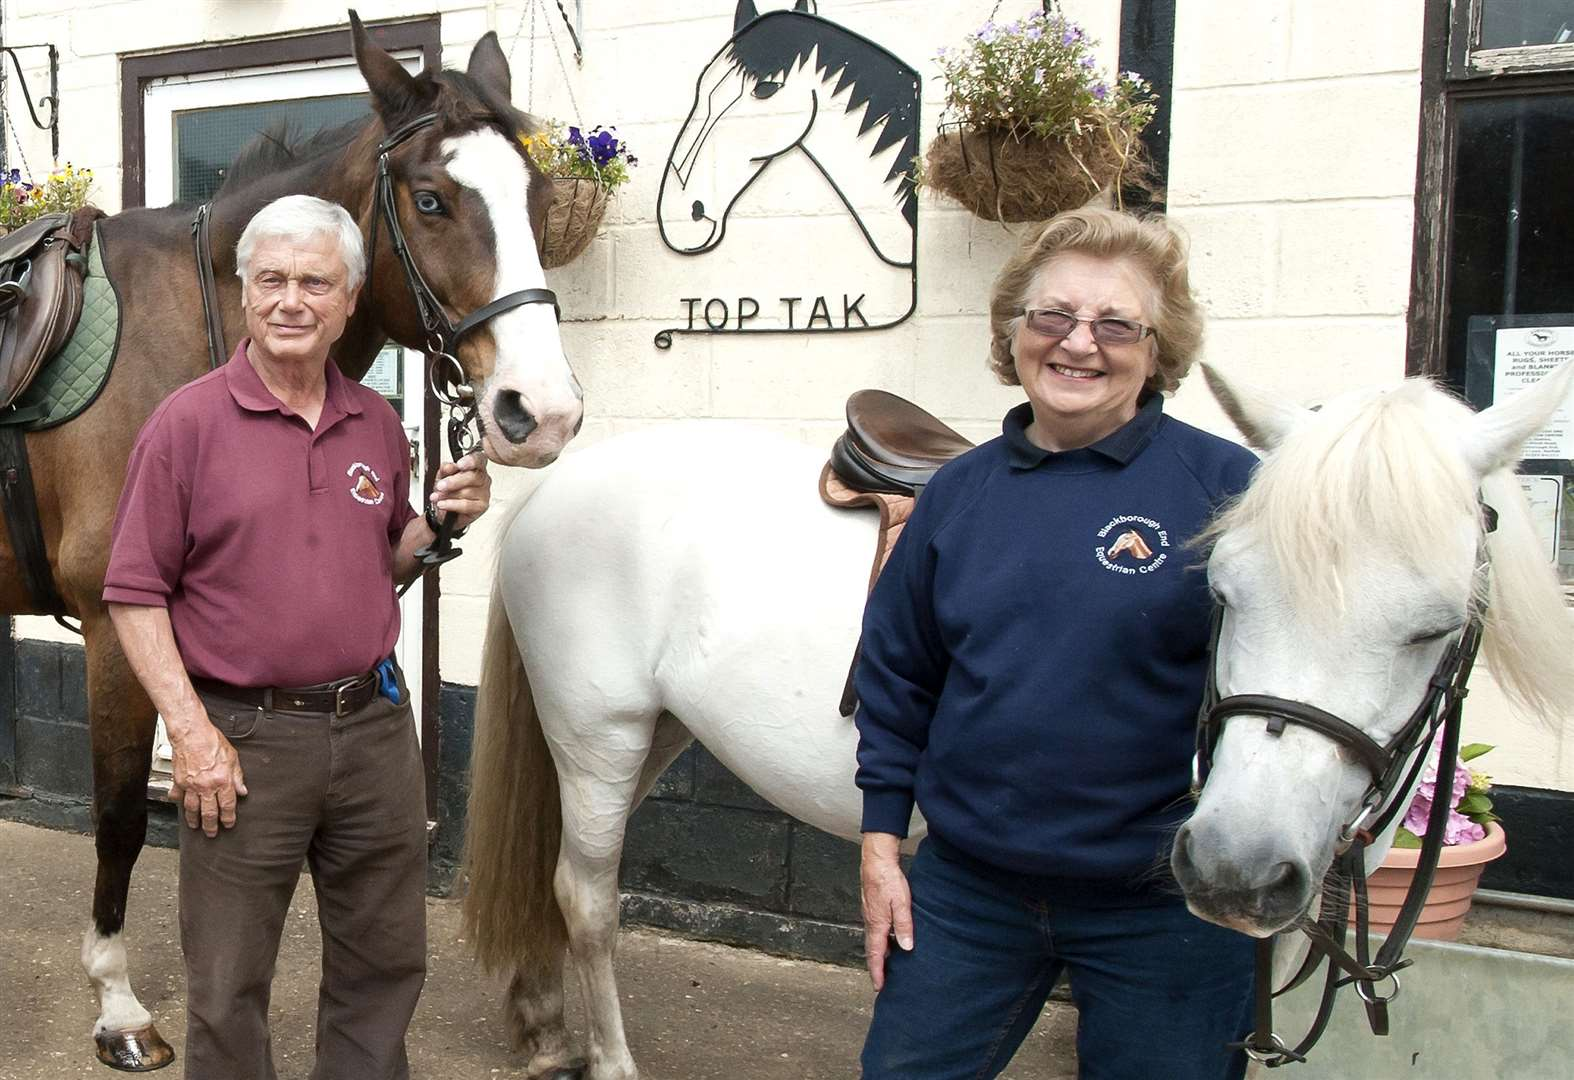 End of an era for a well-known West Norfolk equestrian centre used by thousands of riders